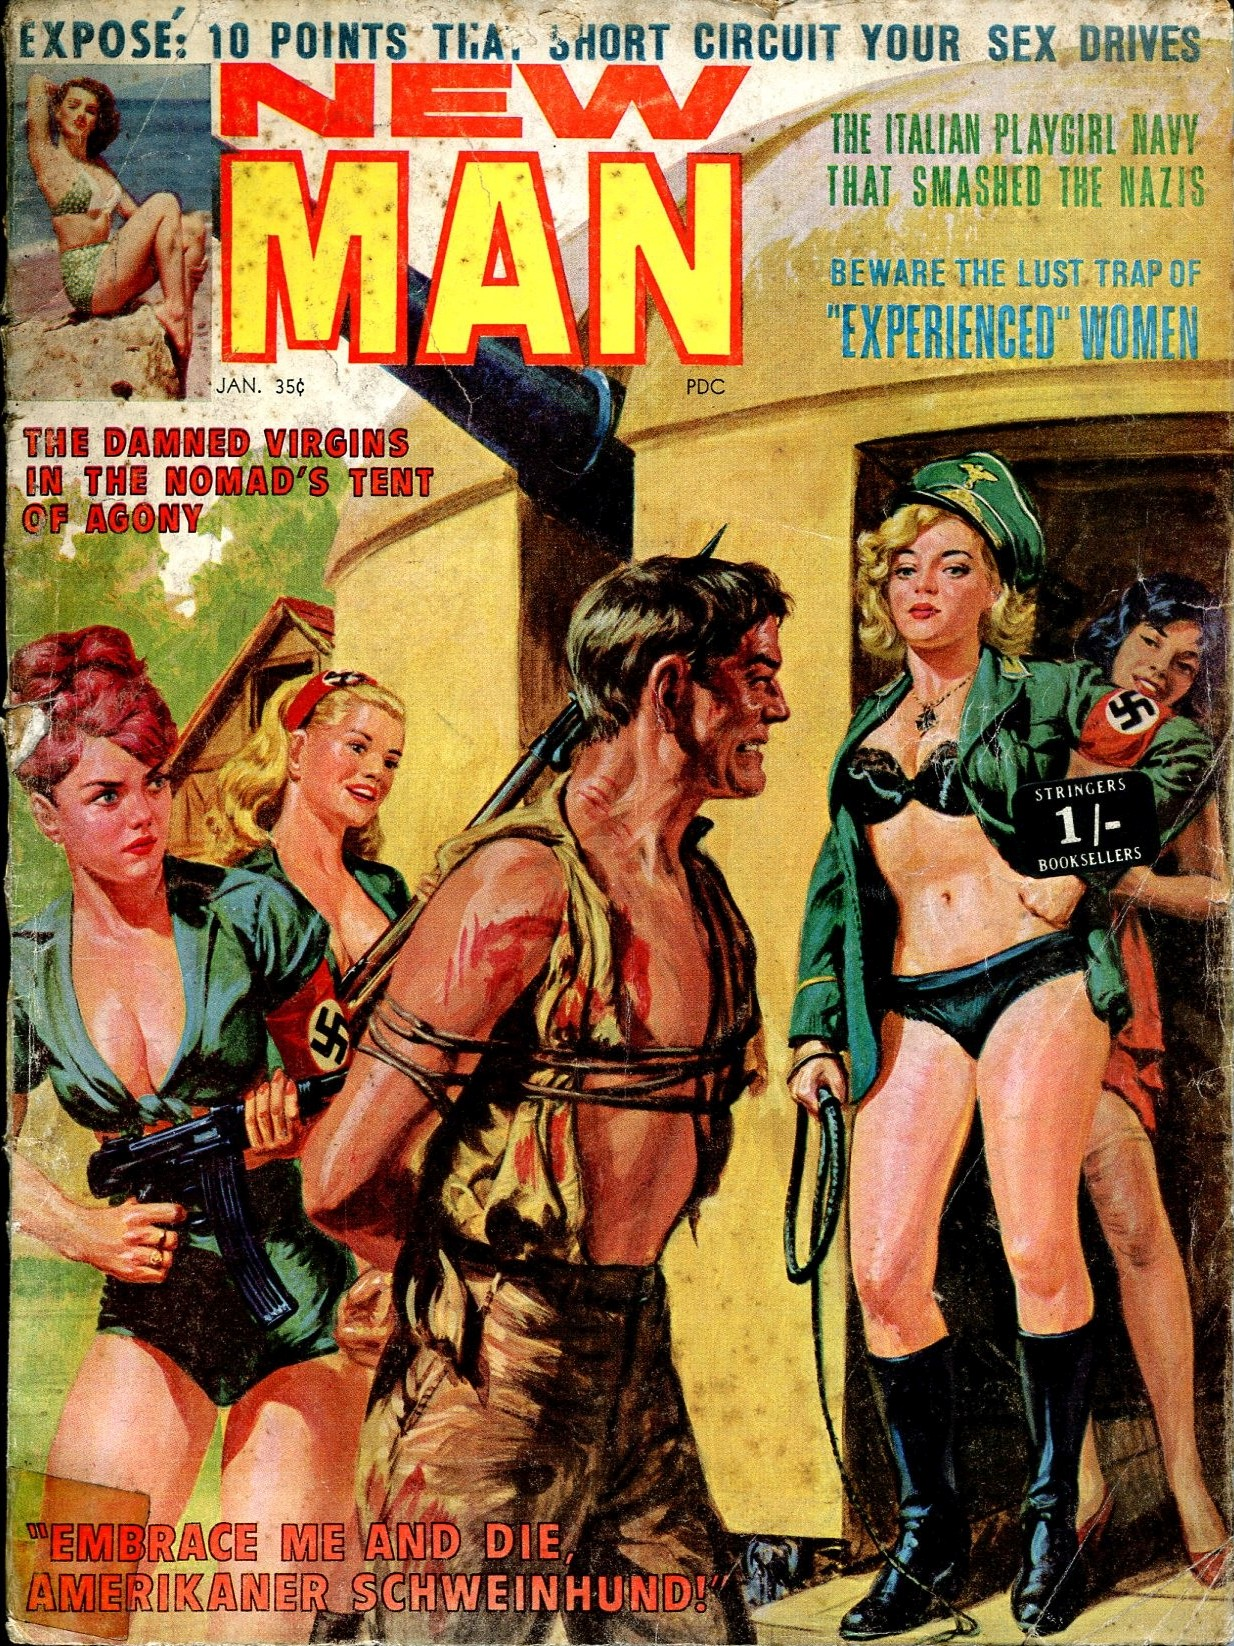 https://pulpcovers.com/wp-content/uploads/2016/04/New-Man-January-1964.jpg